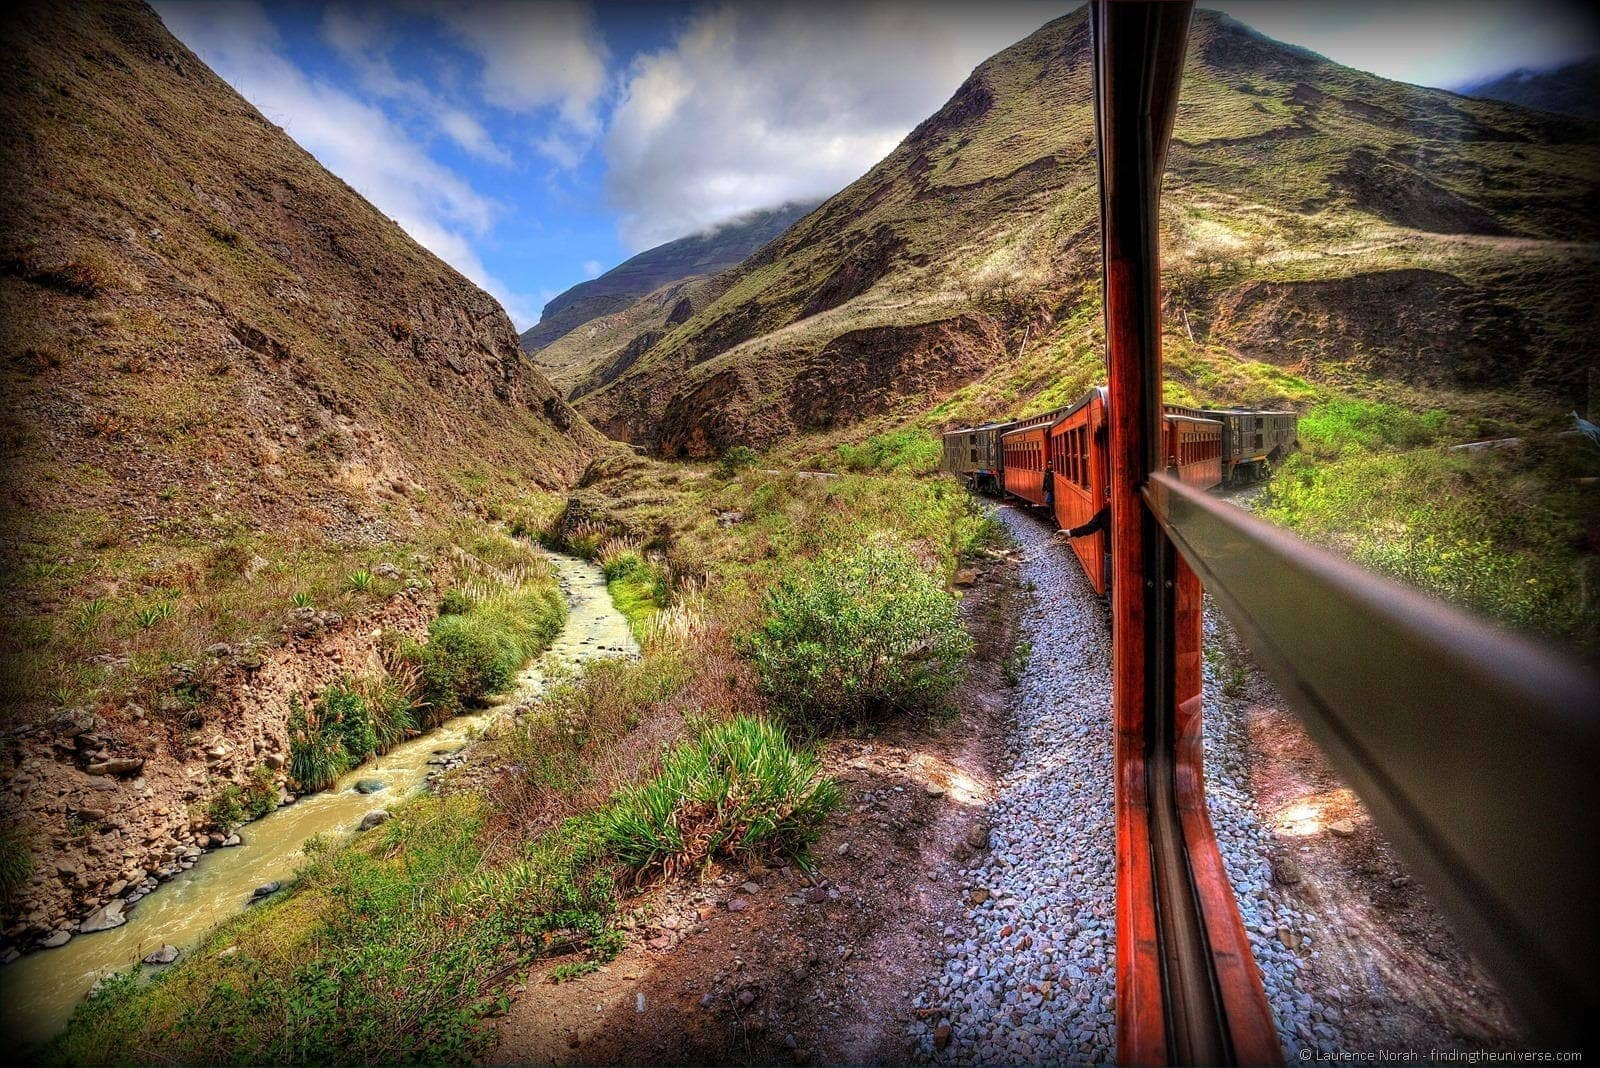 Train devils nose Ecuador Alausi view 2